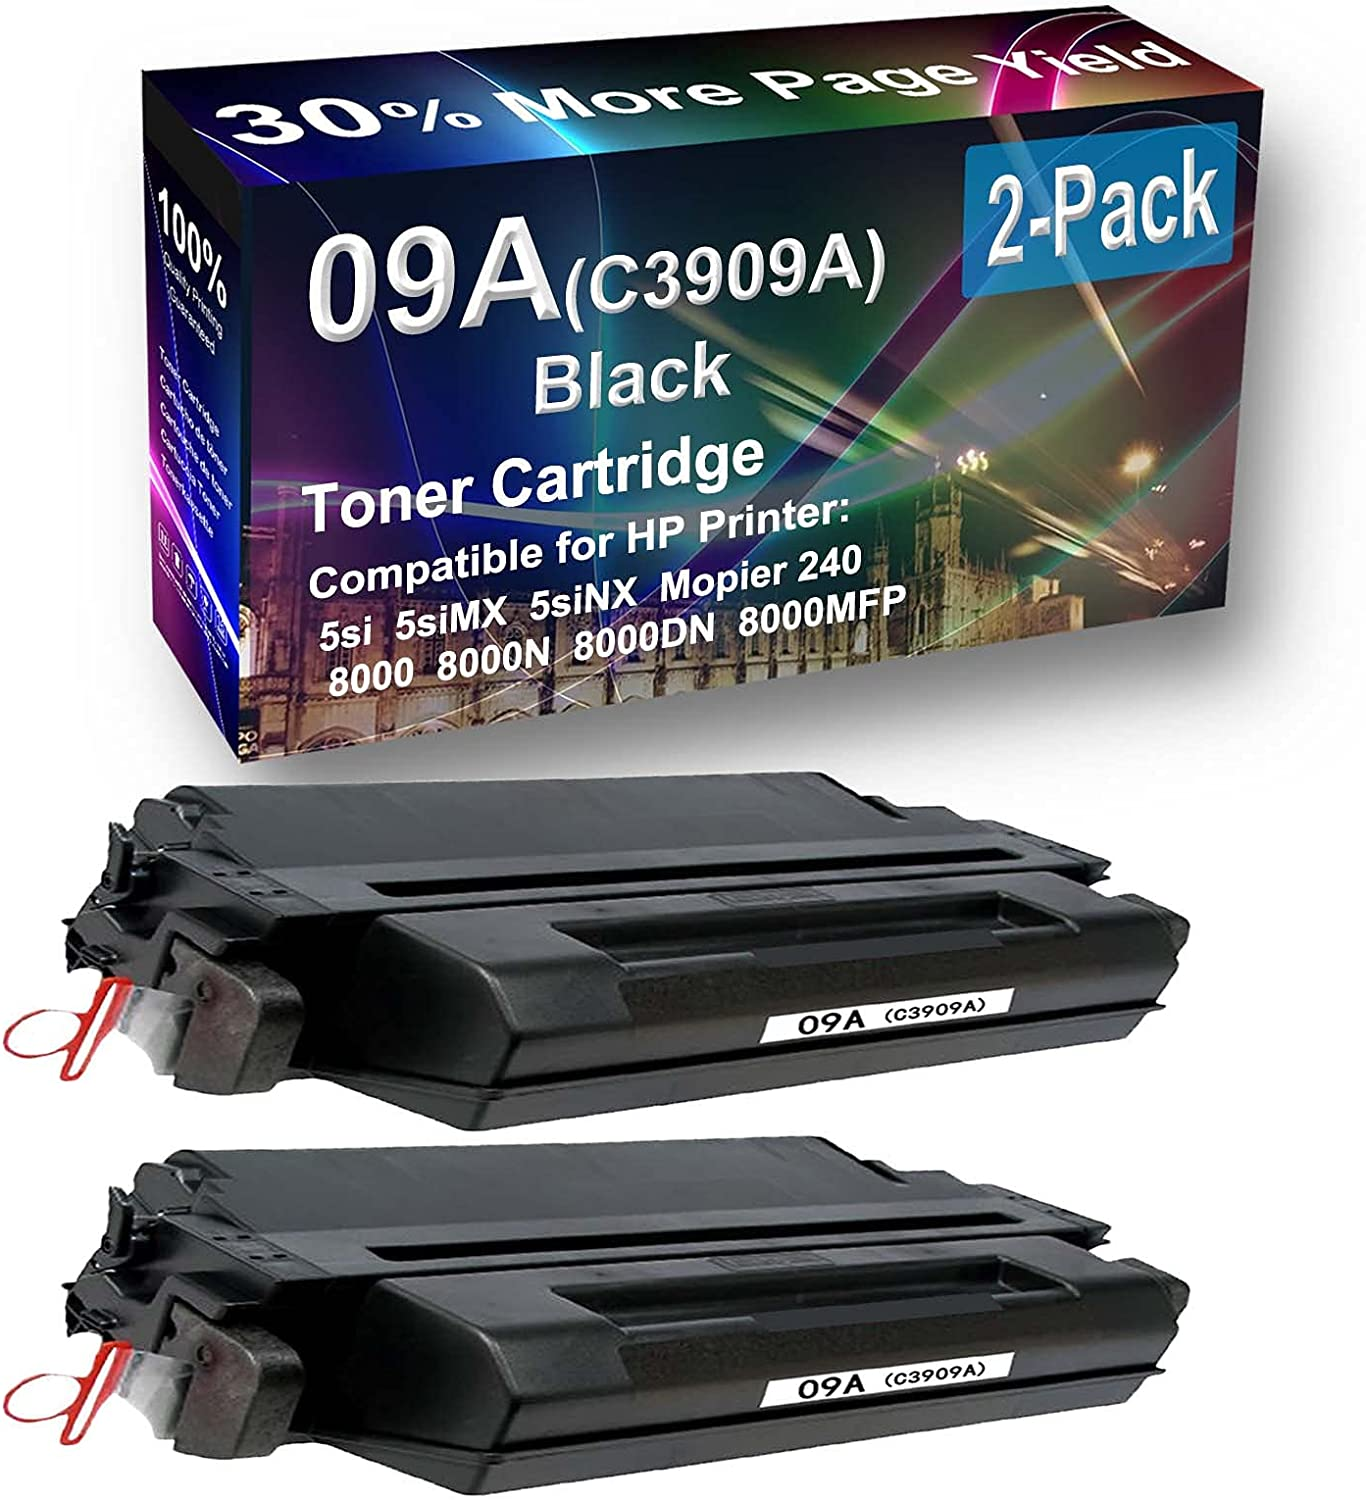 2-Pack Compatible High Capacity 8000DN, 8000MFP Printer Toner Cartridge Replacement for HP 09A (C3909A) Printer Cartridge (Black)